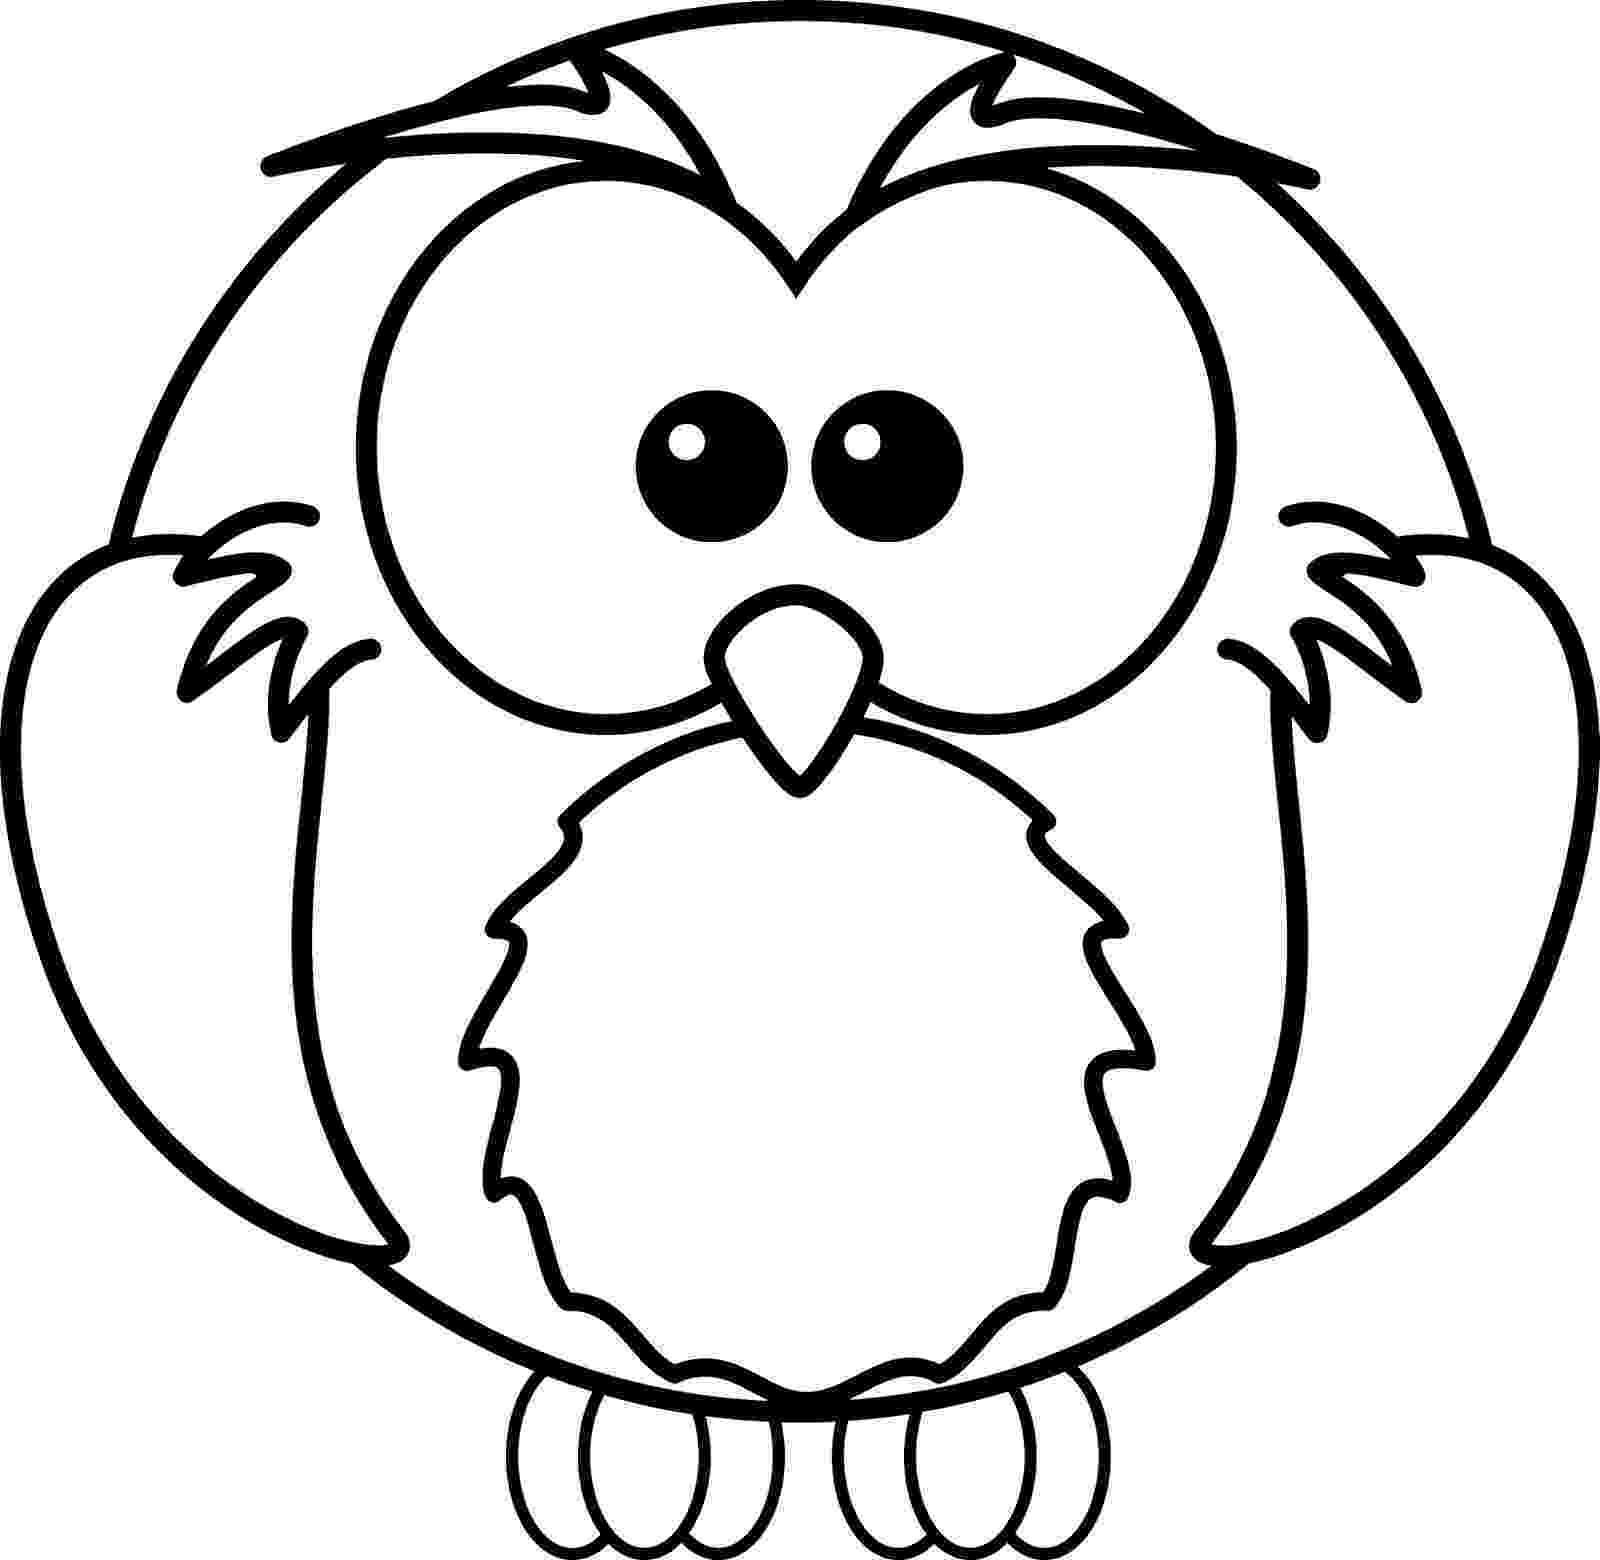 pictures of owls to color cartoon owl coloring page free printable coloring pages of to color pictures owls